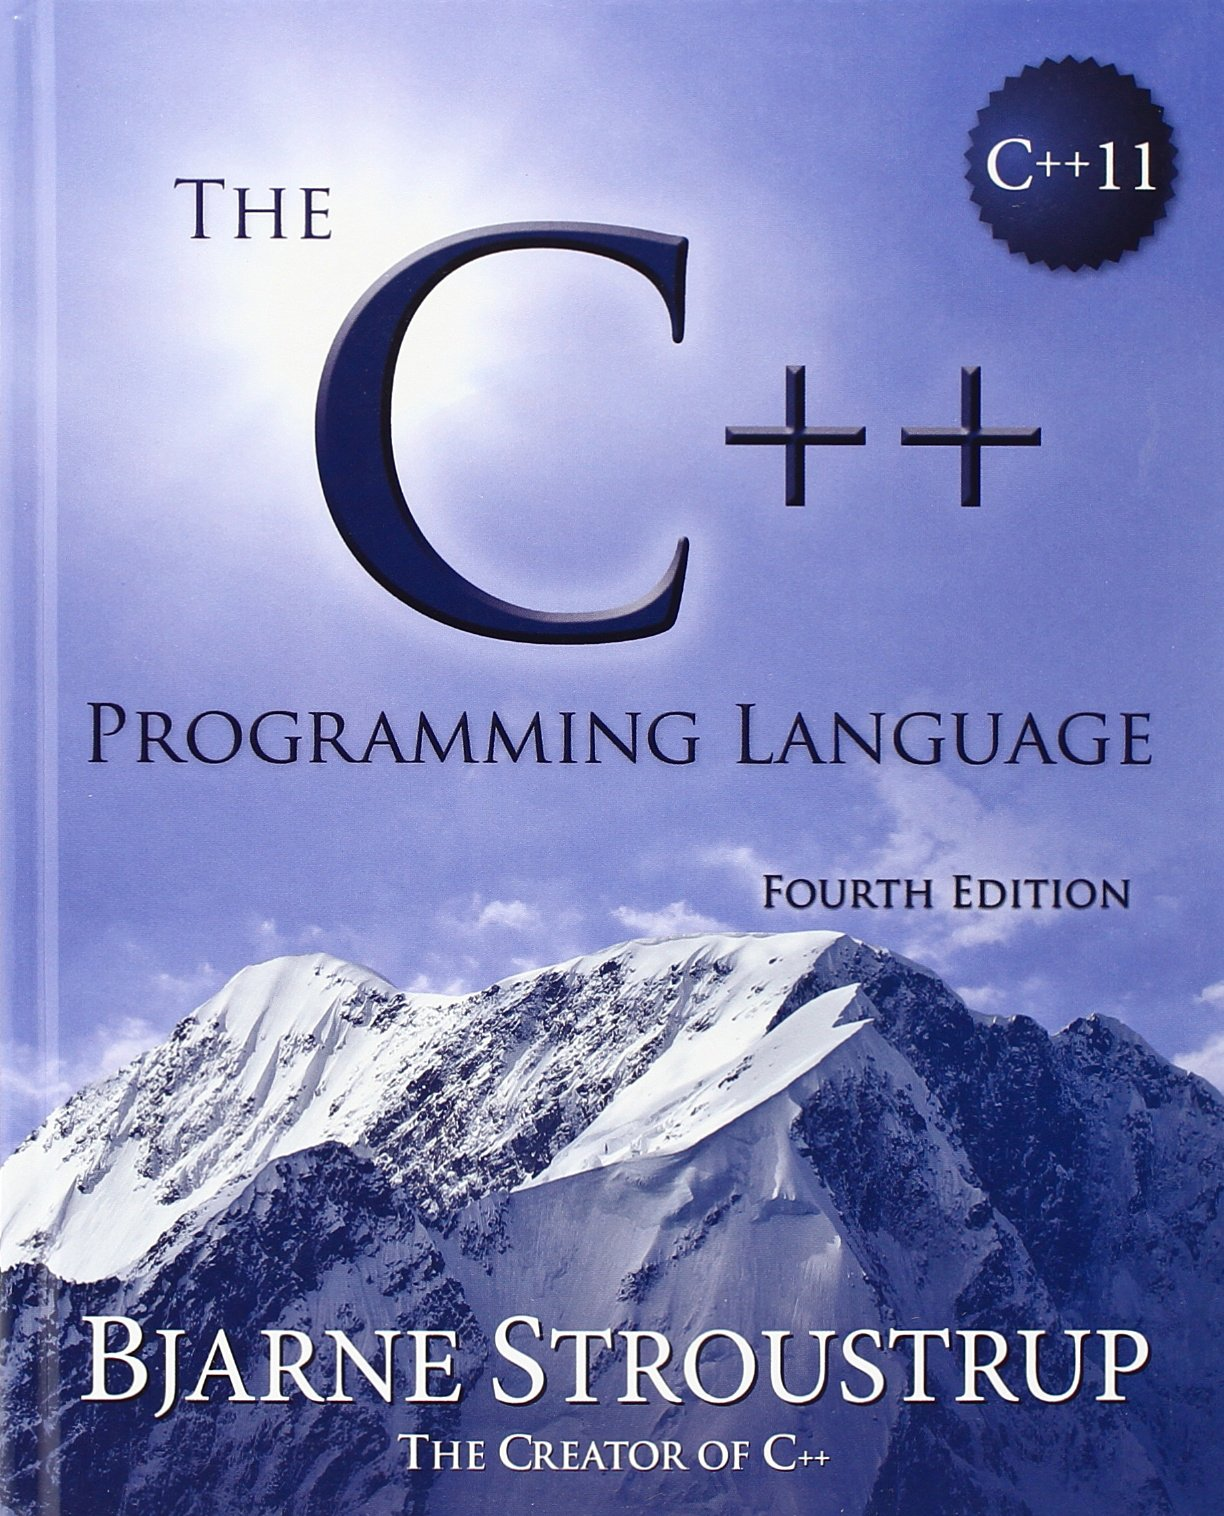 The C++ Programming Language (hardcover) (4th Edition) by Bjarne Stroustrup